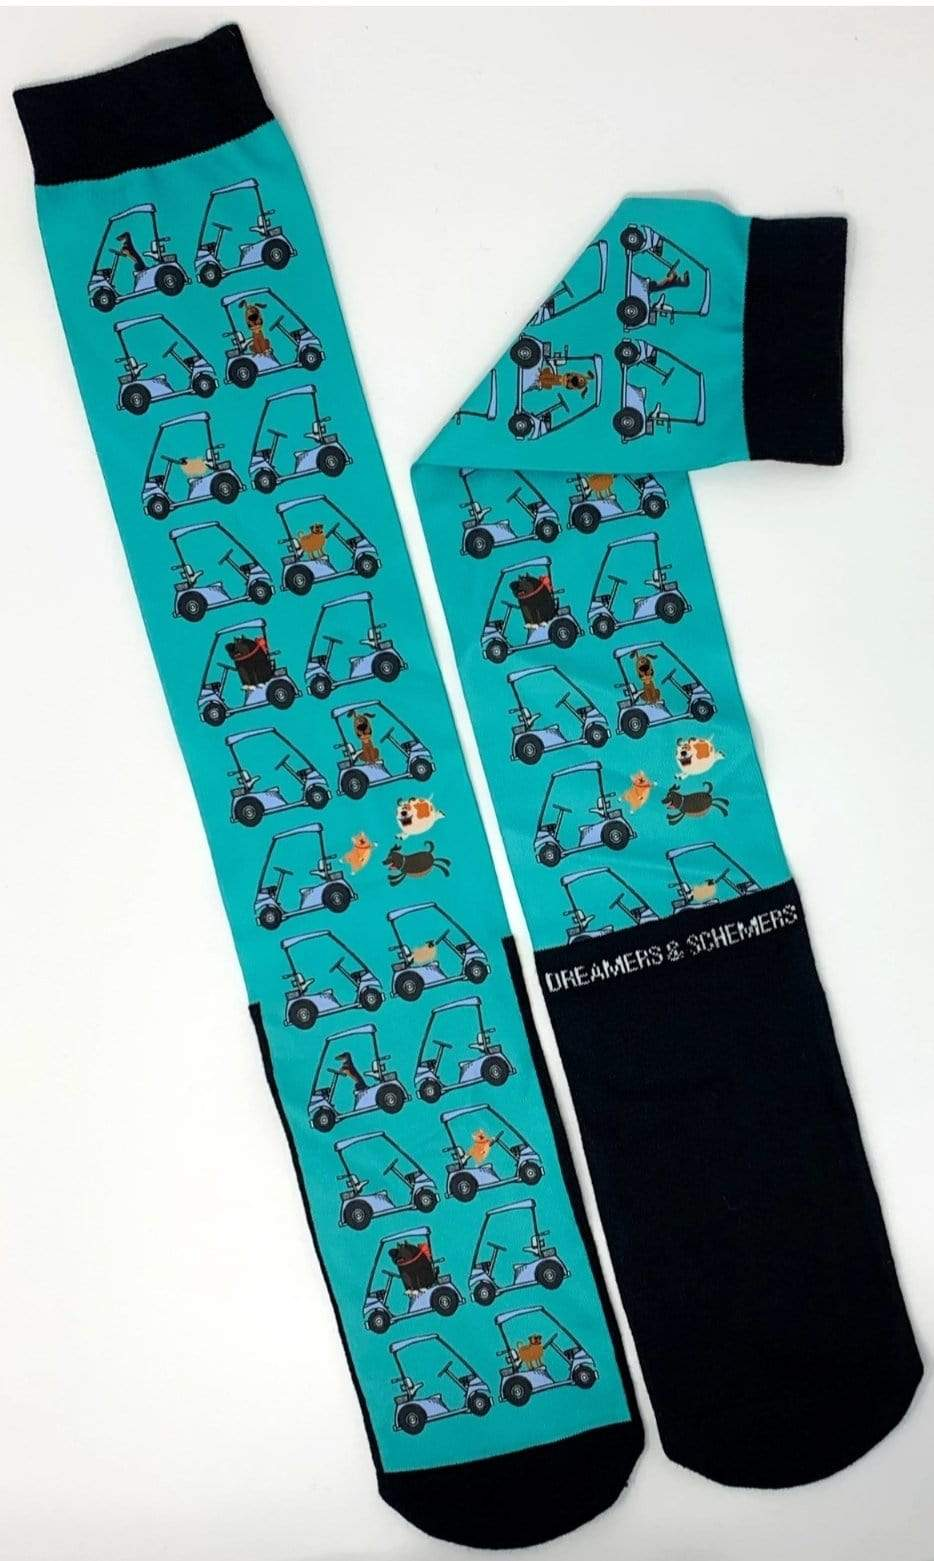 Dreamers & Schemers Socks Dreamers & Schemers Carty Party equestrian team apparel online tack store mobile tack store custom farm apparel custom show stable clothing equestrian lifestyle horse show clothing riding clothes horses equestrian tack store